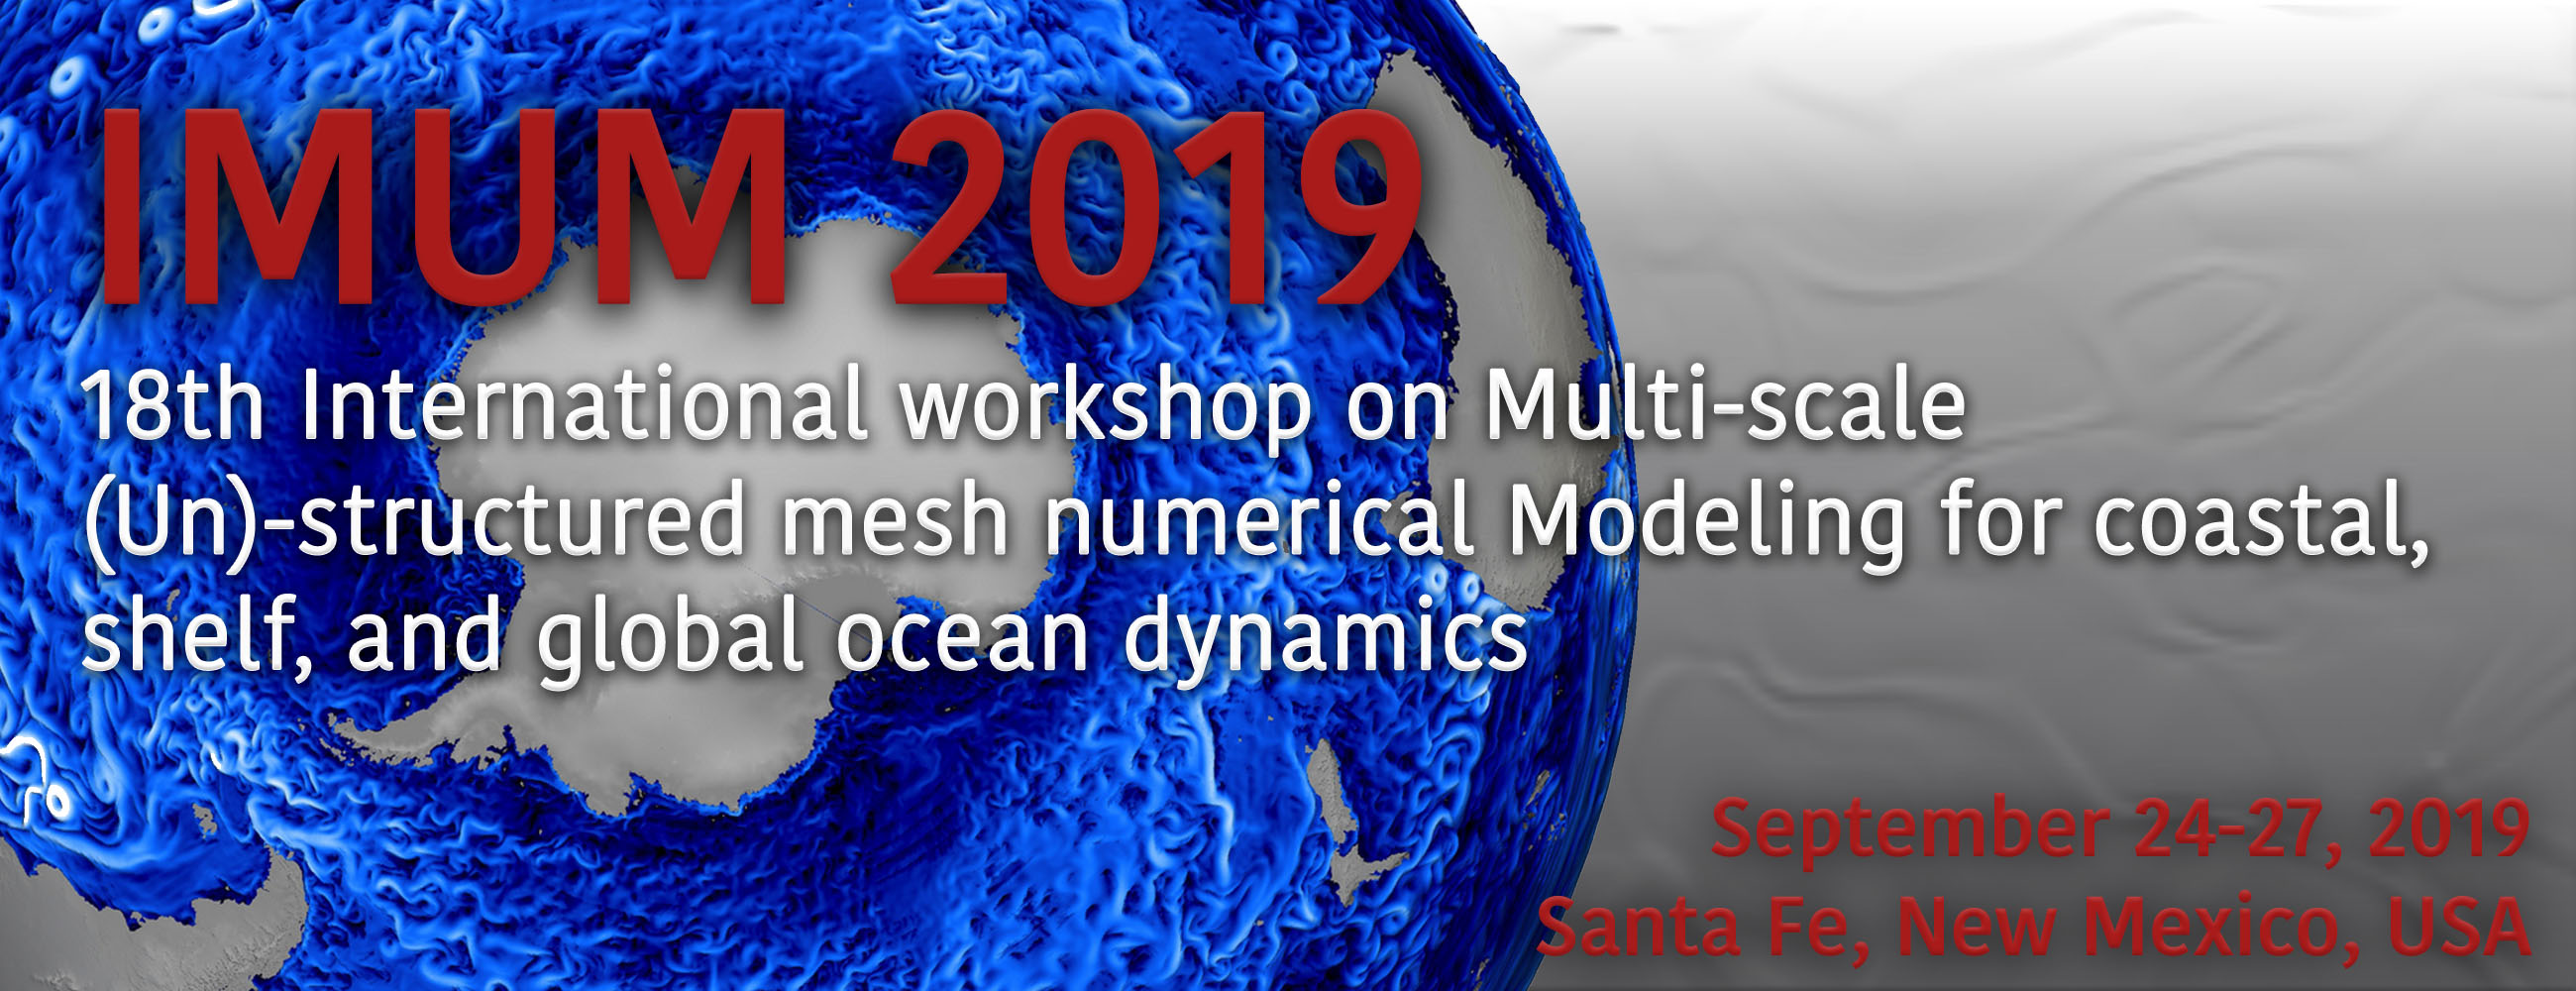 International workshop on Multi-scale (Un)-structured mesh numerical Modeling for coastal, shelf, and global ocean dynamics (IMUM 2019)